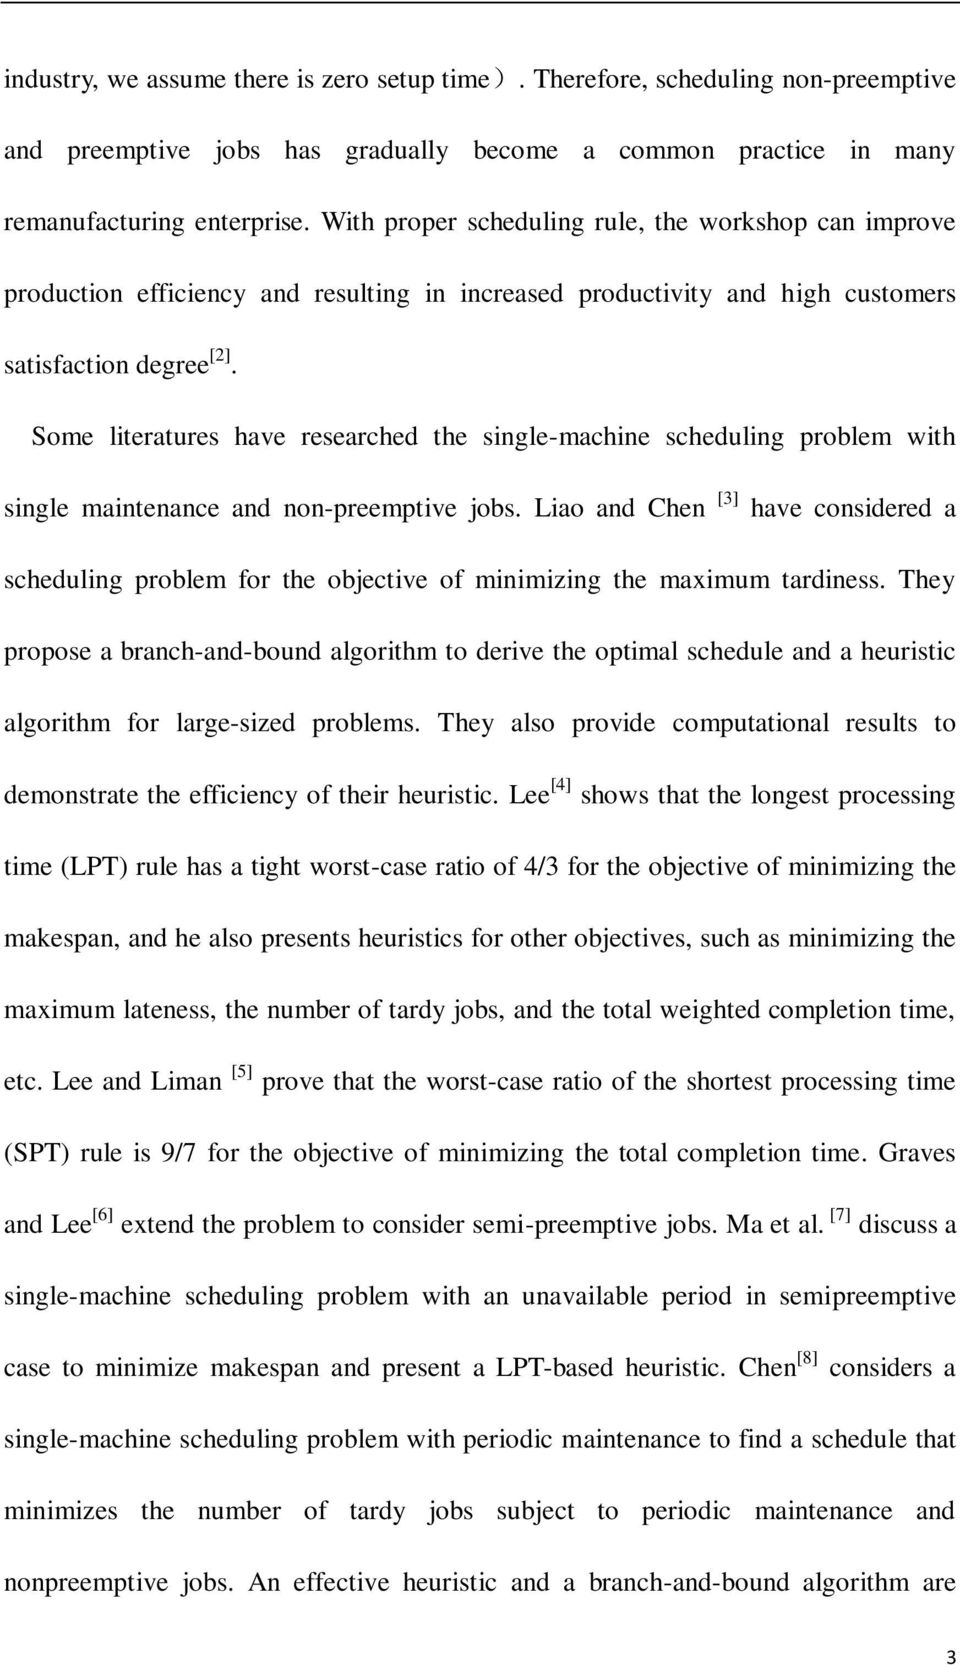 Some lieraures have researched he single-machine scheduling problem wih single mainenance and non-preempive jobs.